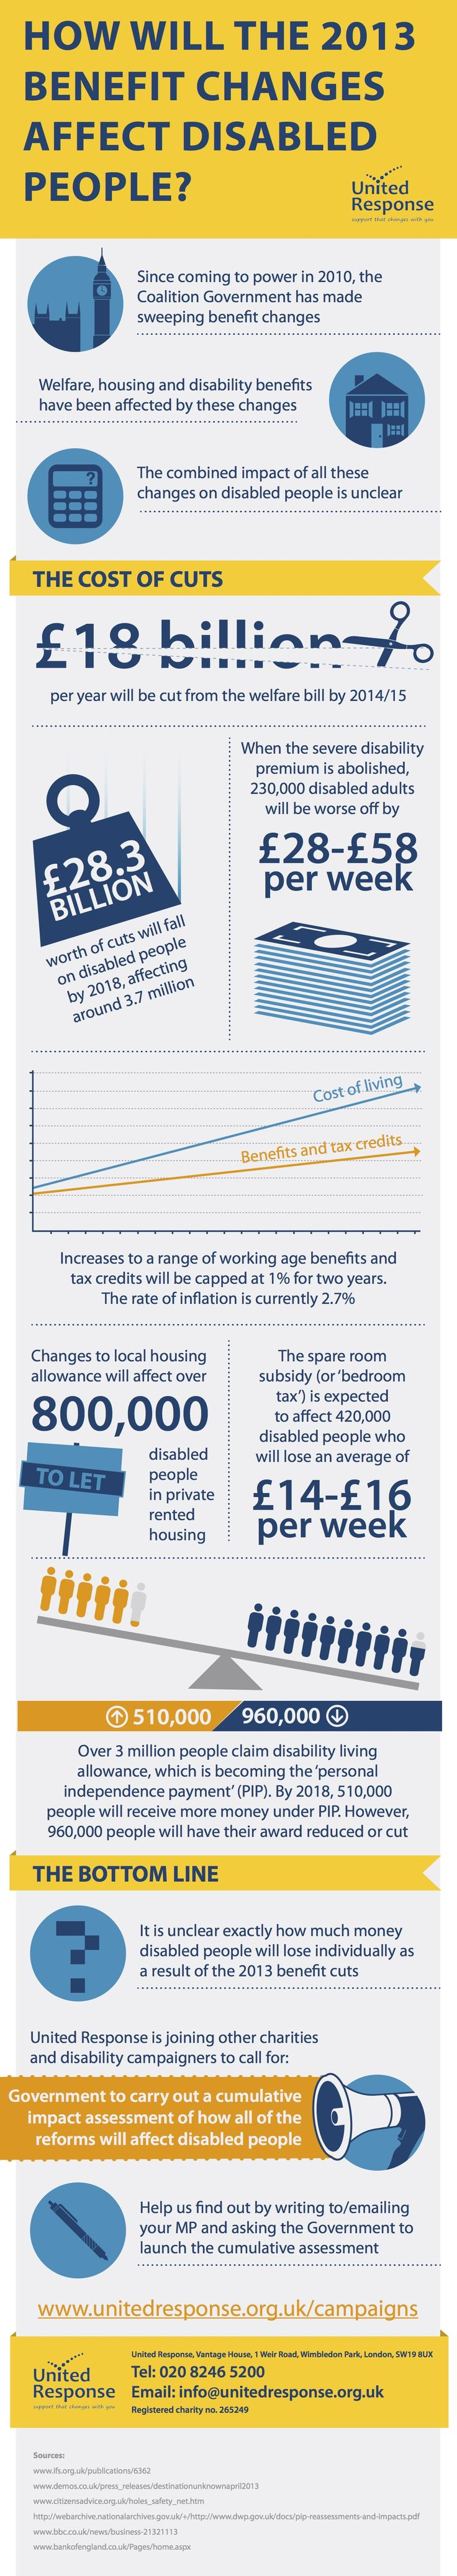 Before the Comprehensive Spending Review… new infographic reveals depth of spending cuts already hitting disabled people: http://www.unitedresponse.org.uk/2013/06/before-the-comprehensive-spending-review-new-infographic-reveals-depth-of-spending-cuts-already-hitting-disabled-people/